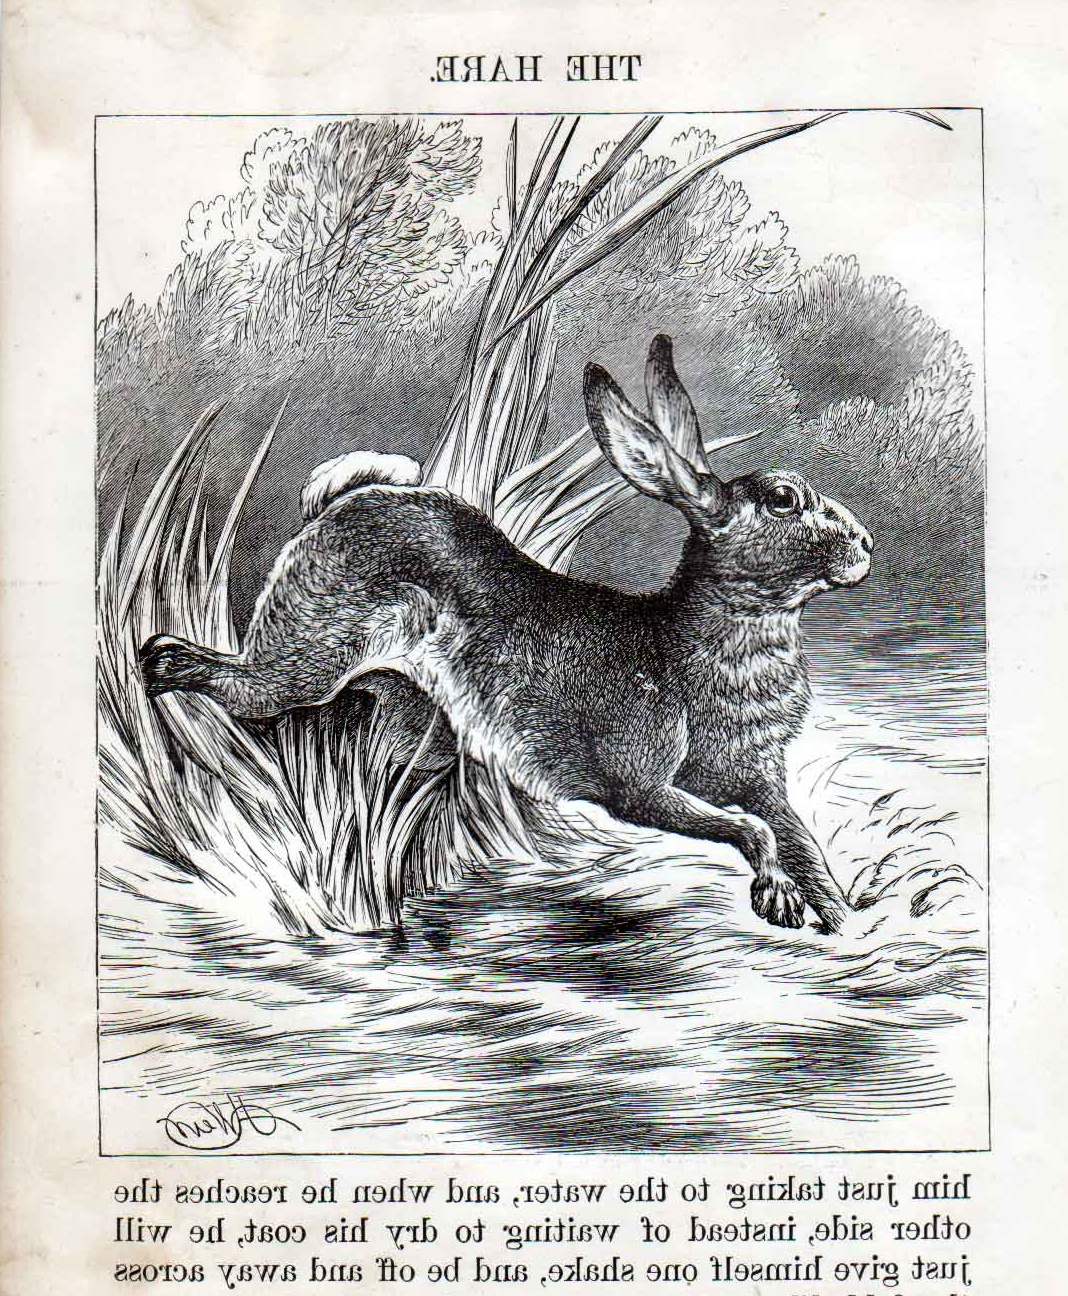 Some Cool Antique/Vintage Images » Hare print